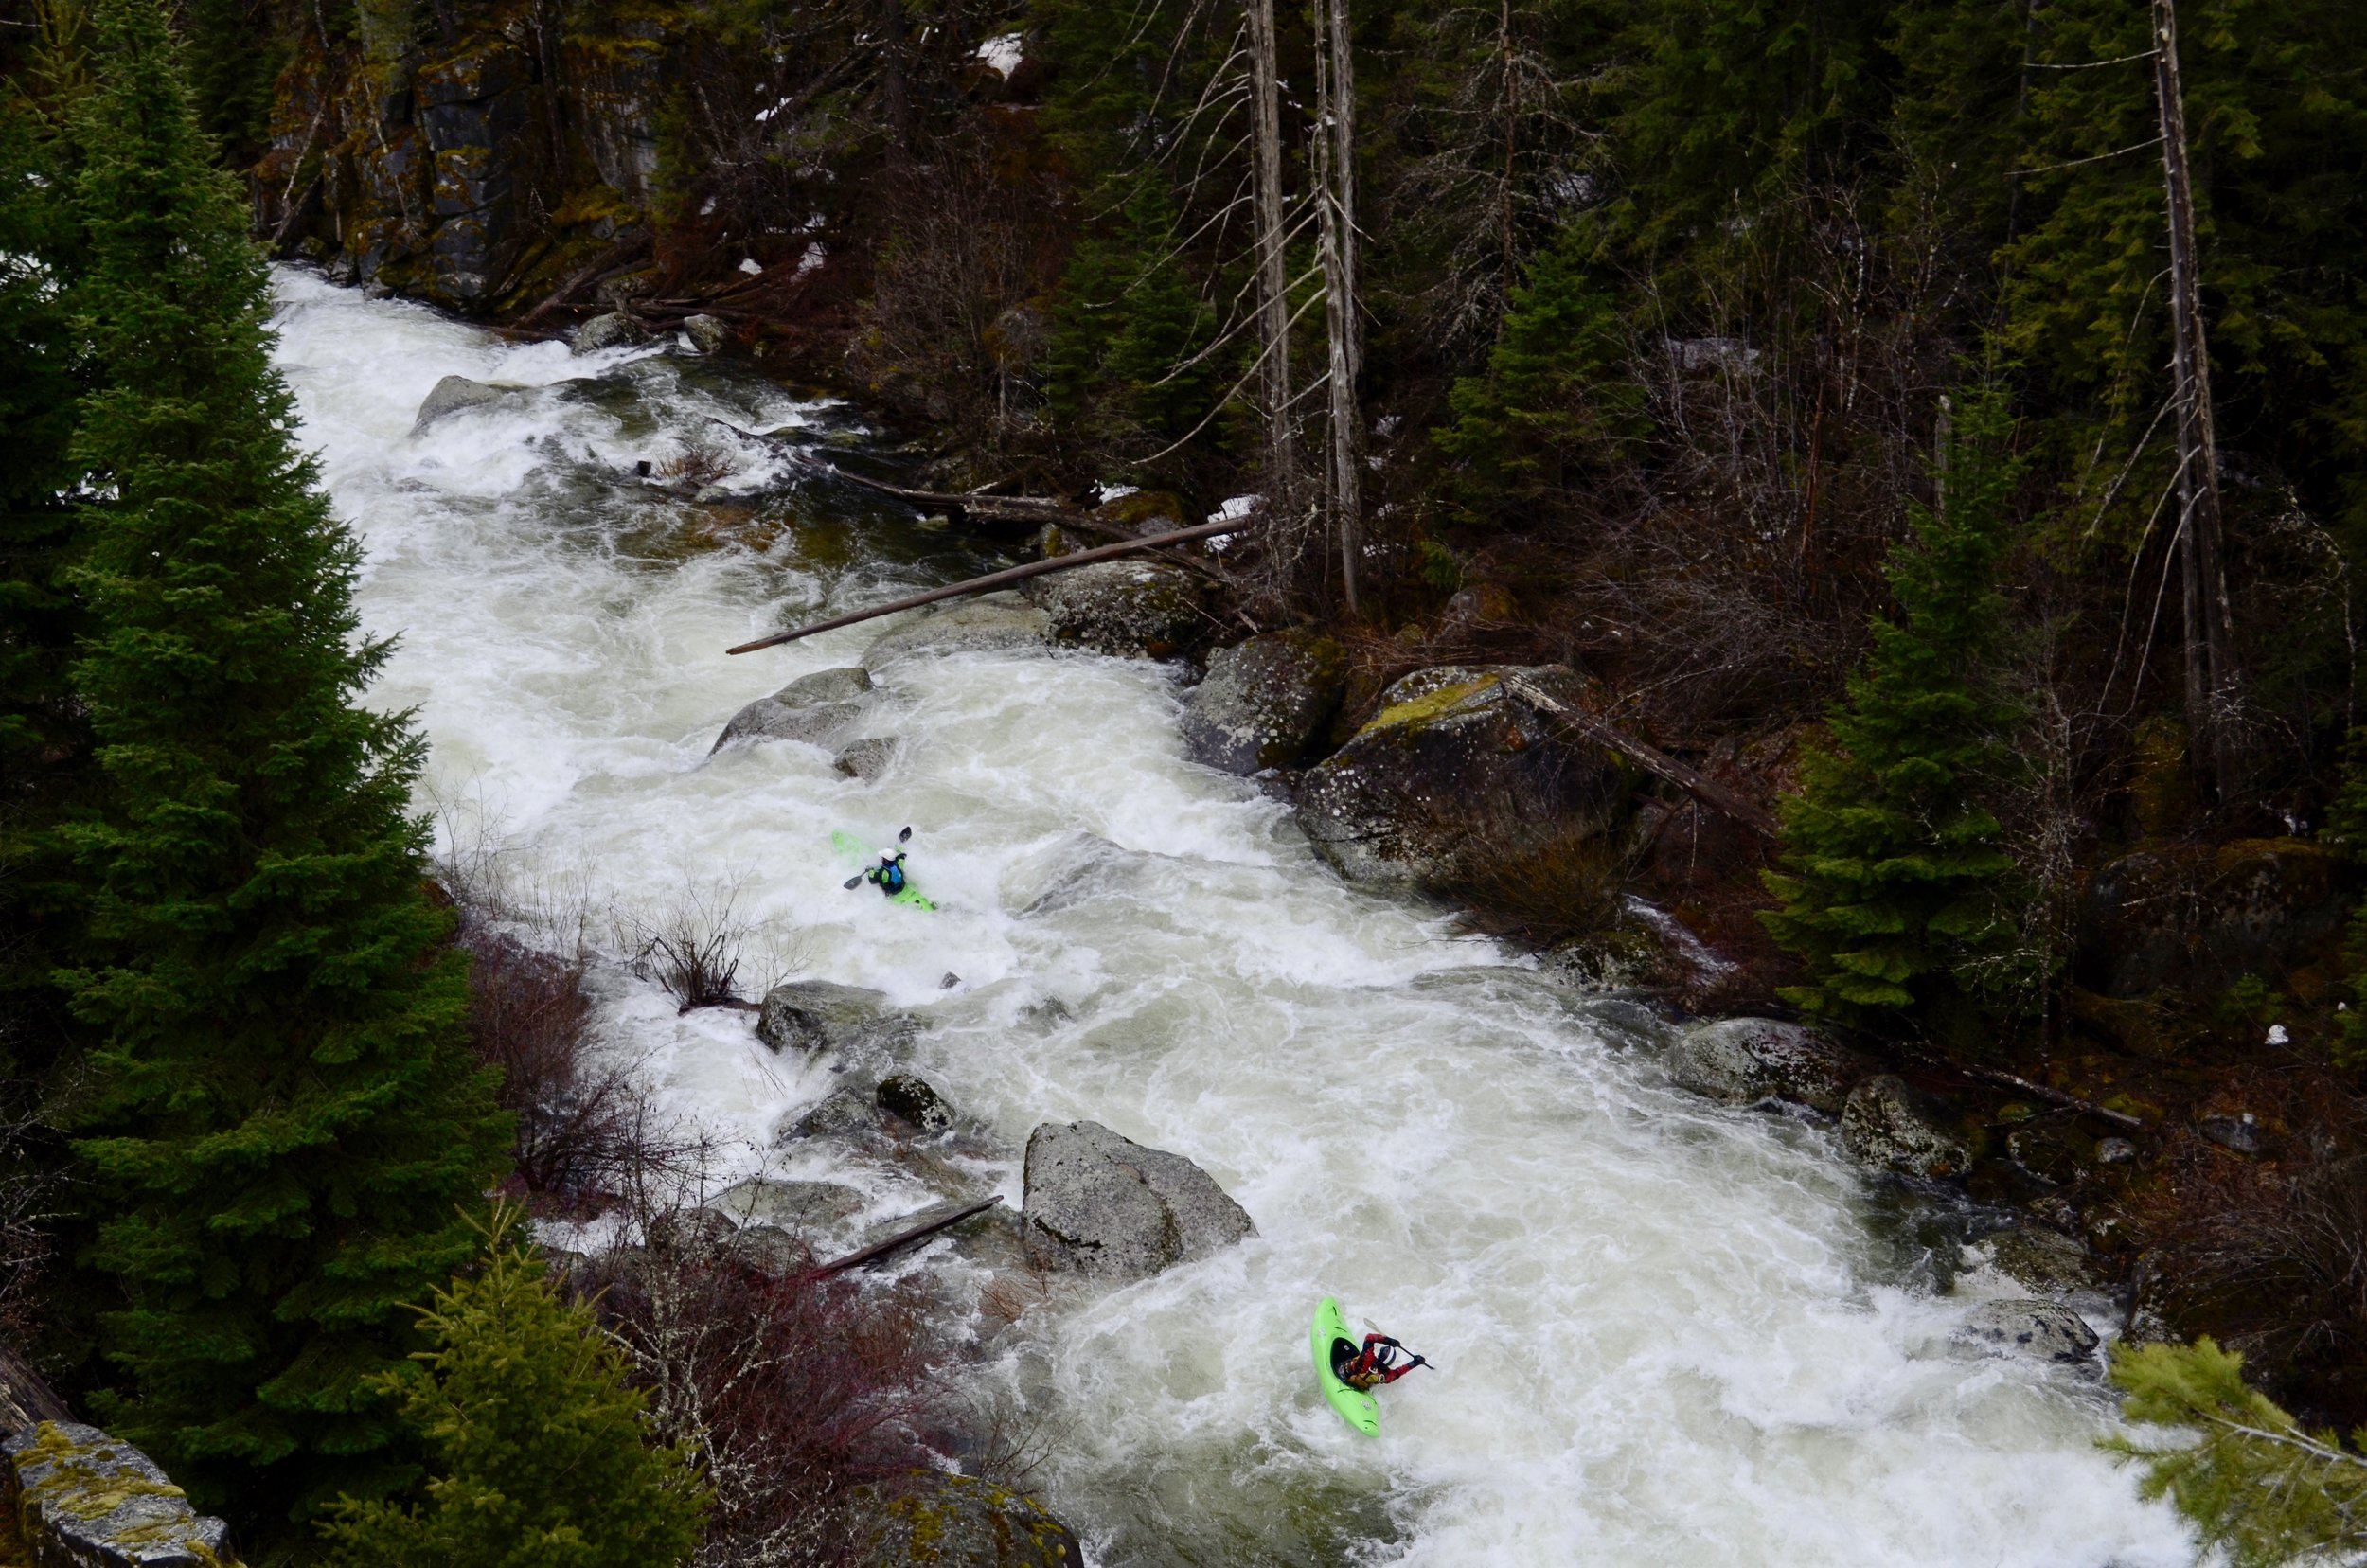 Photo of some kayakers on the fish creek trail. Taken about 2 miles past the trailhead.